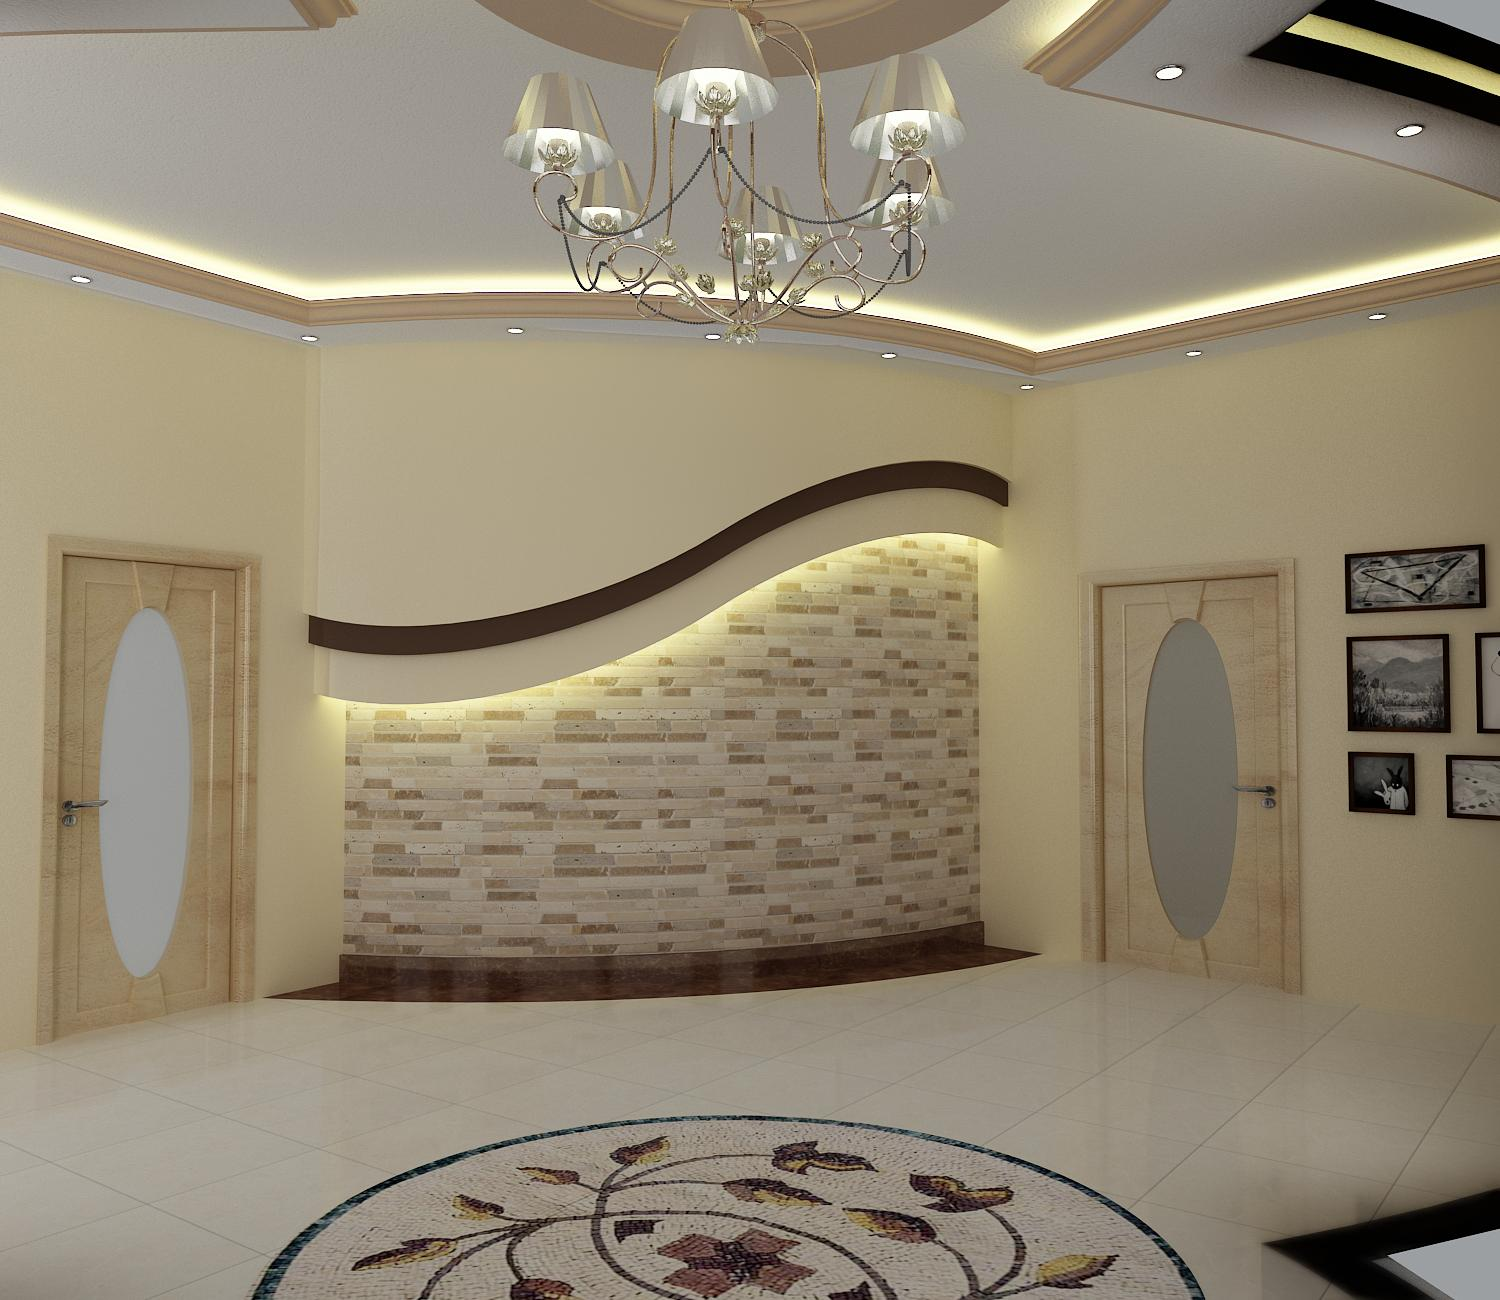 Wasim riaz interior design for a arabic mujlis for Interior decoration pics